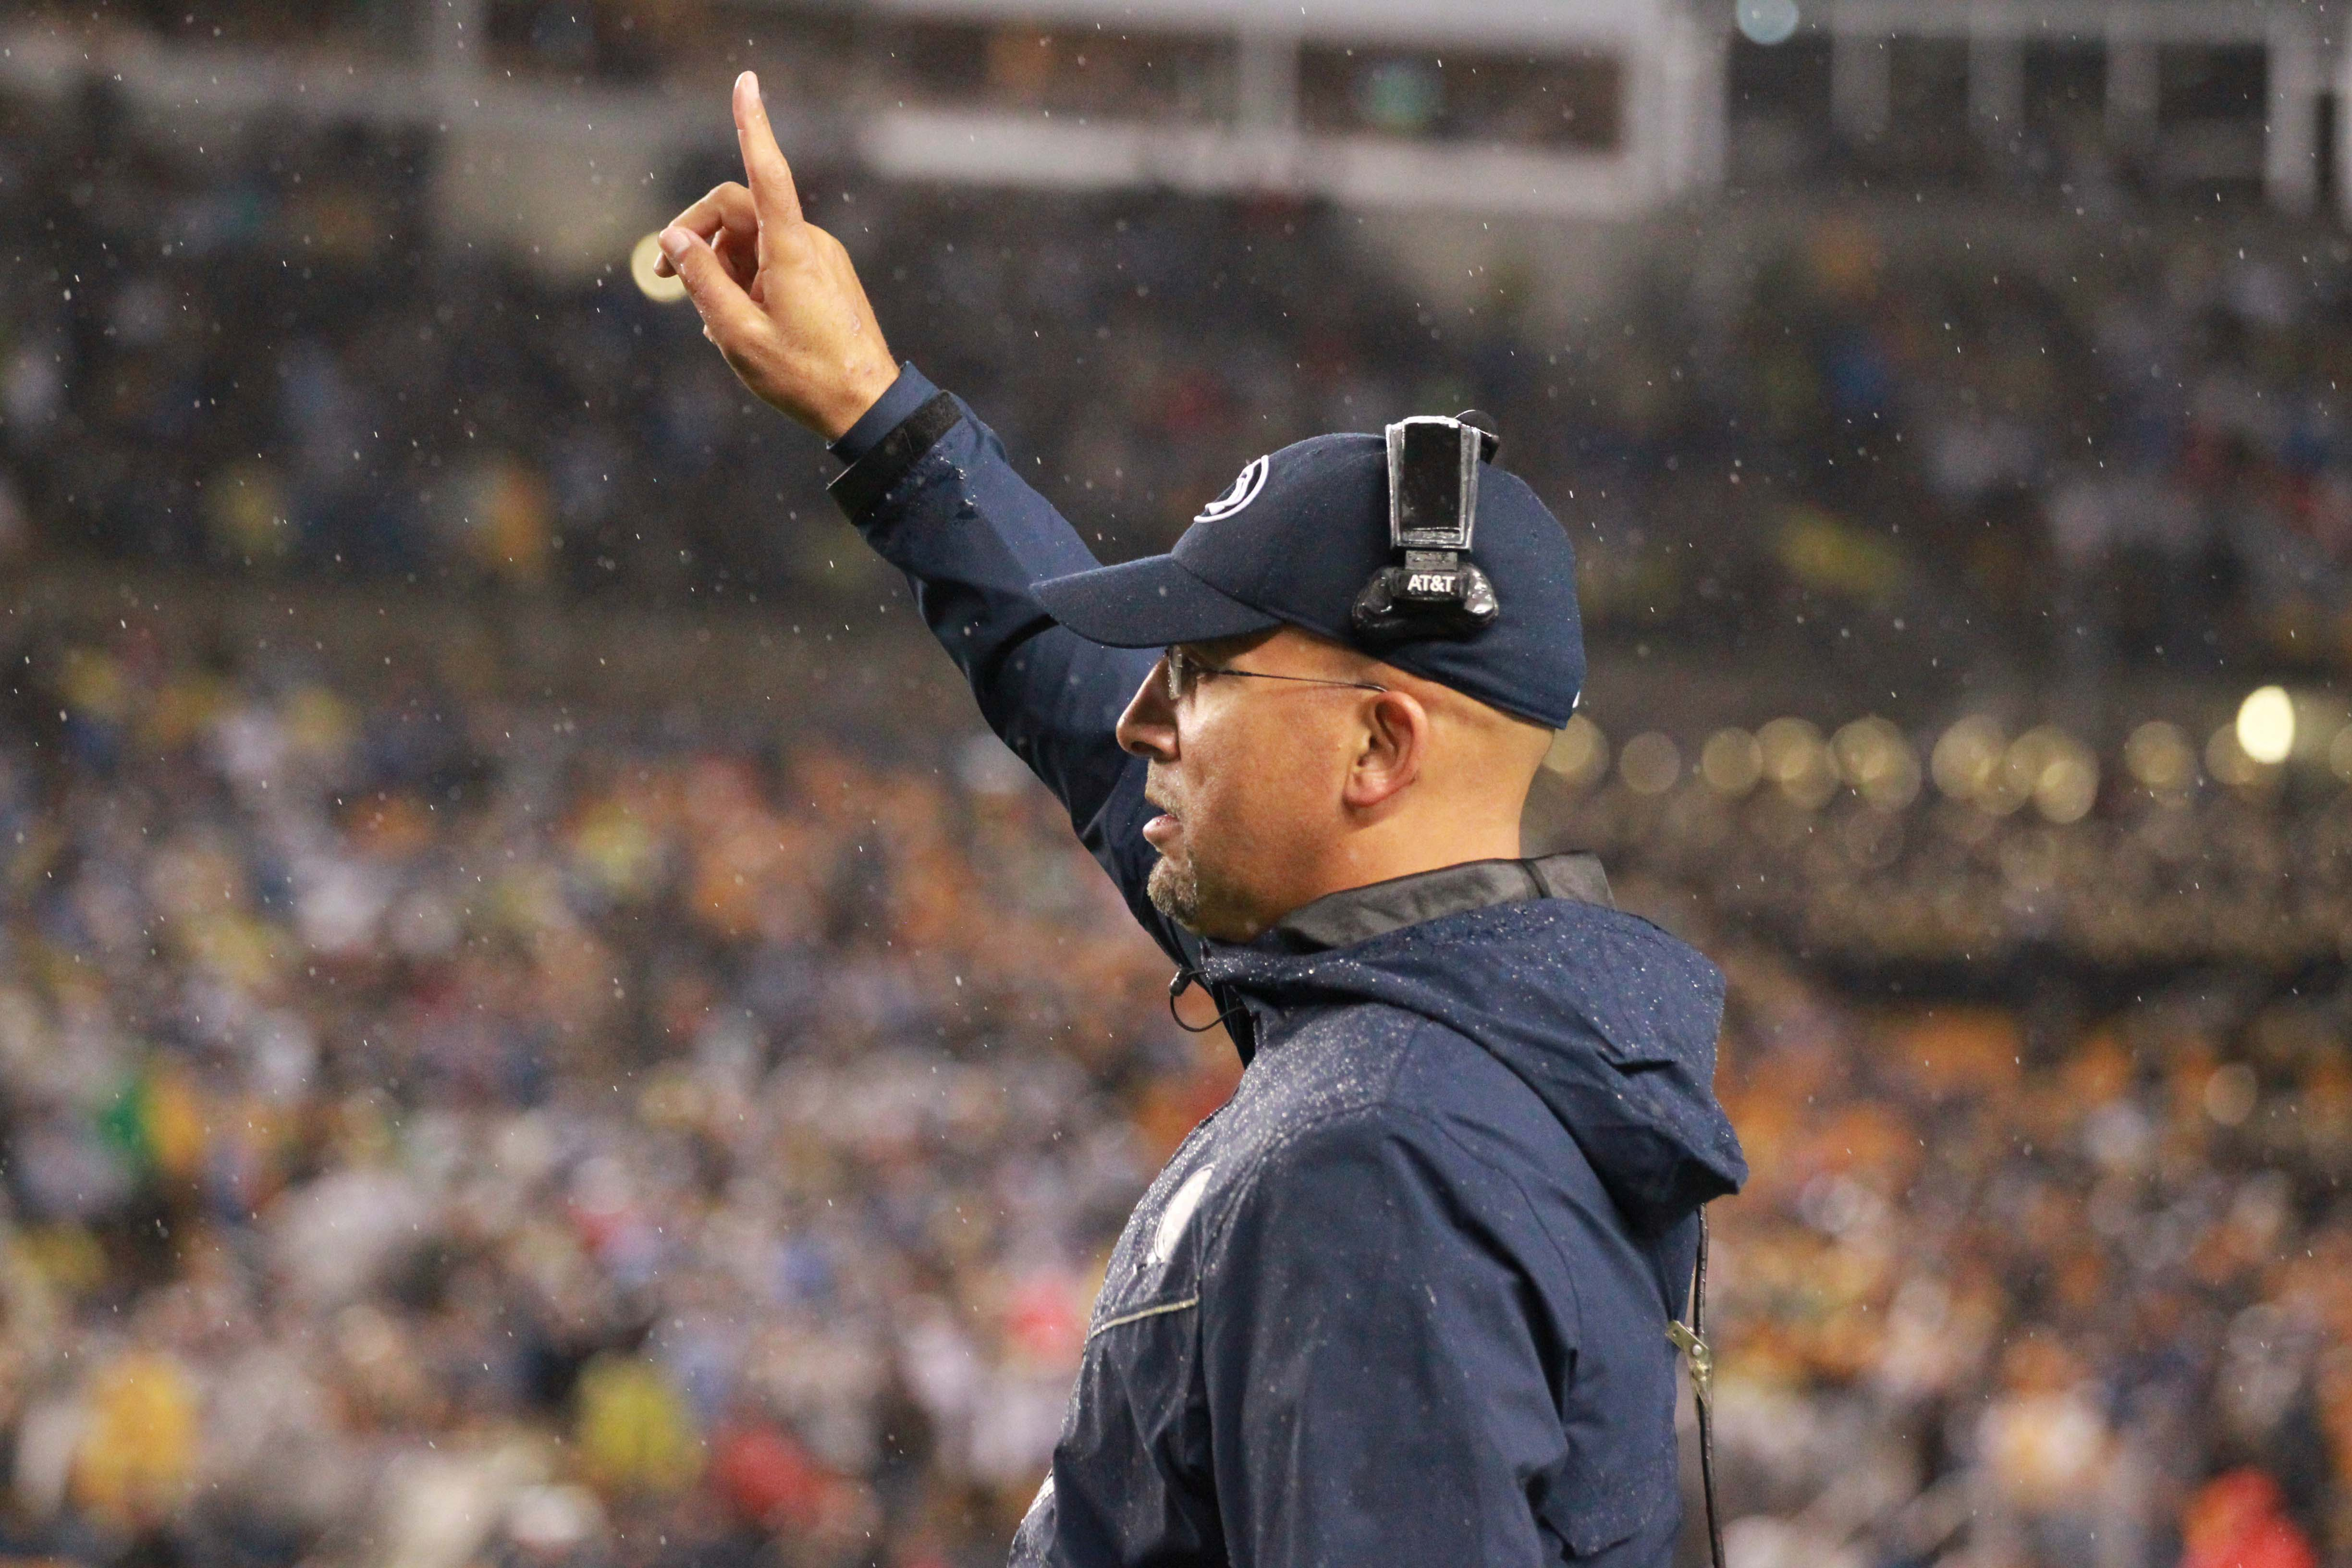 That time of year: James Franklin let's us all know Week 1 is on the horizon